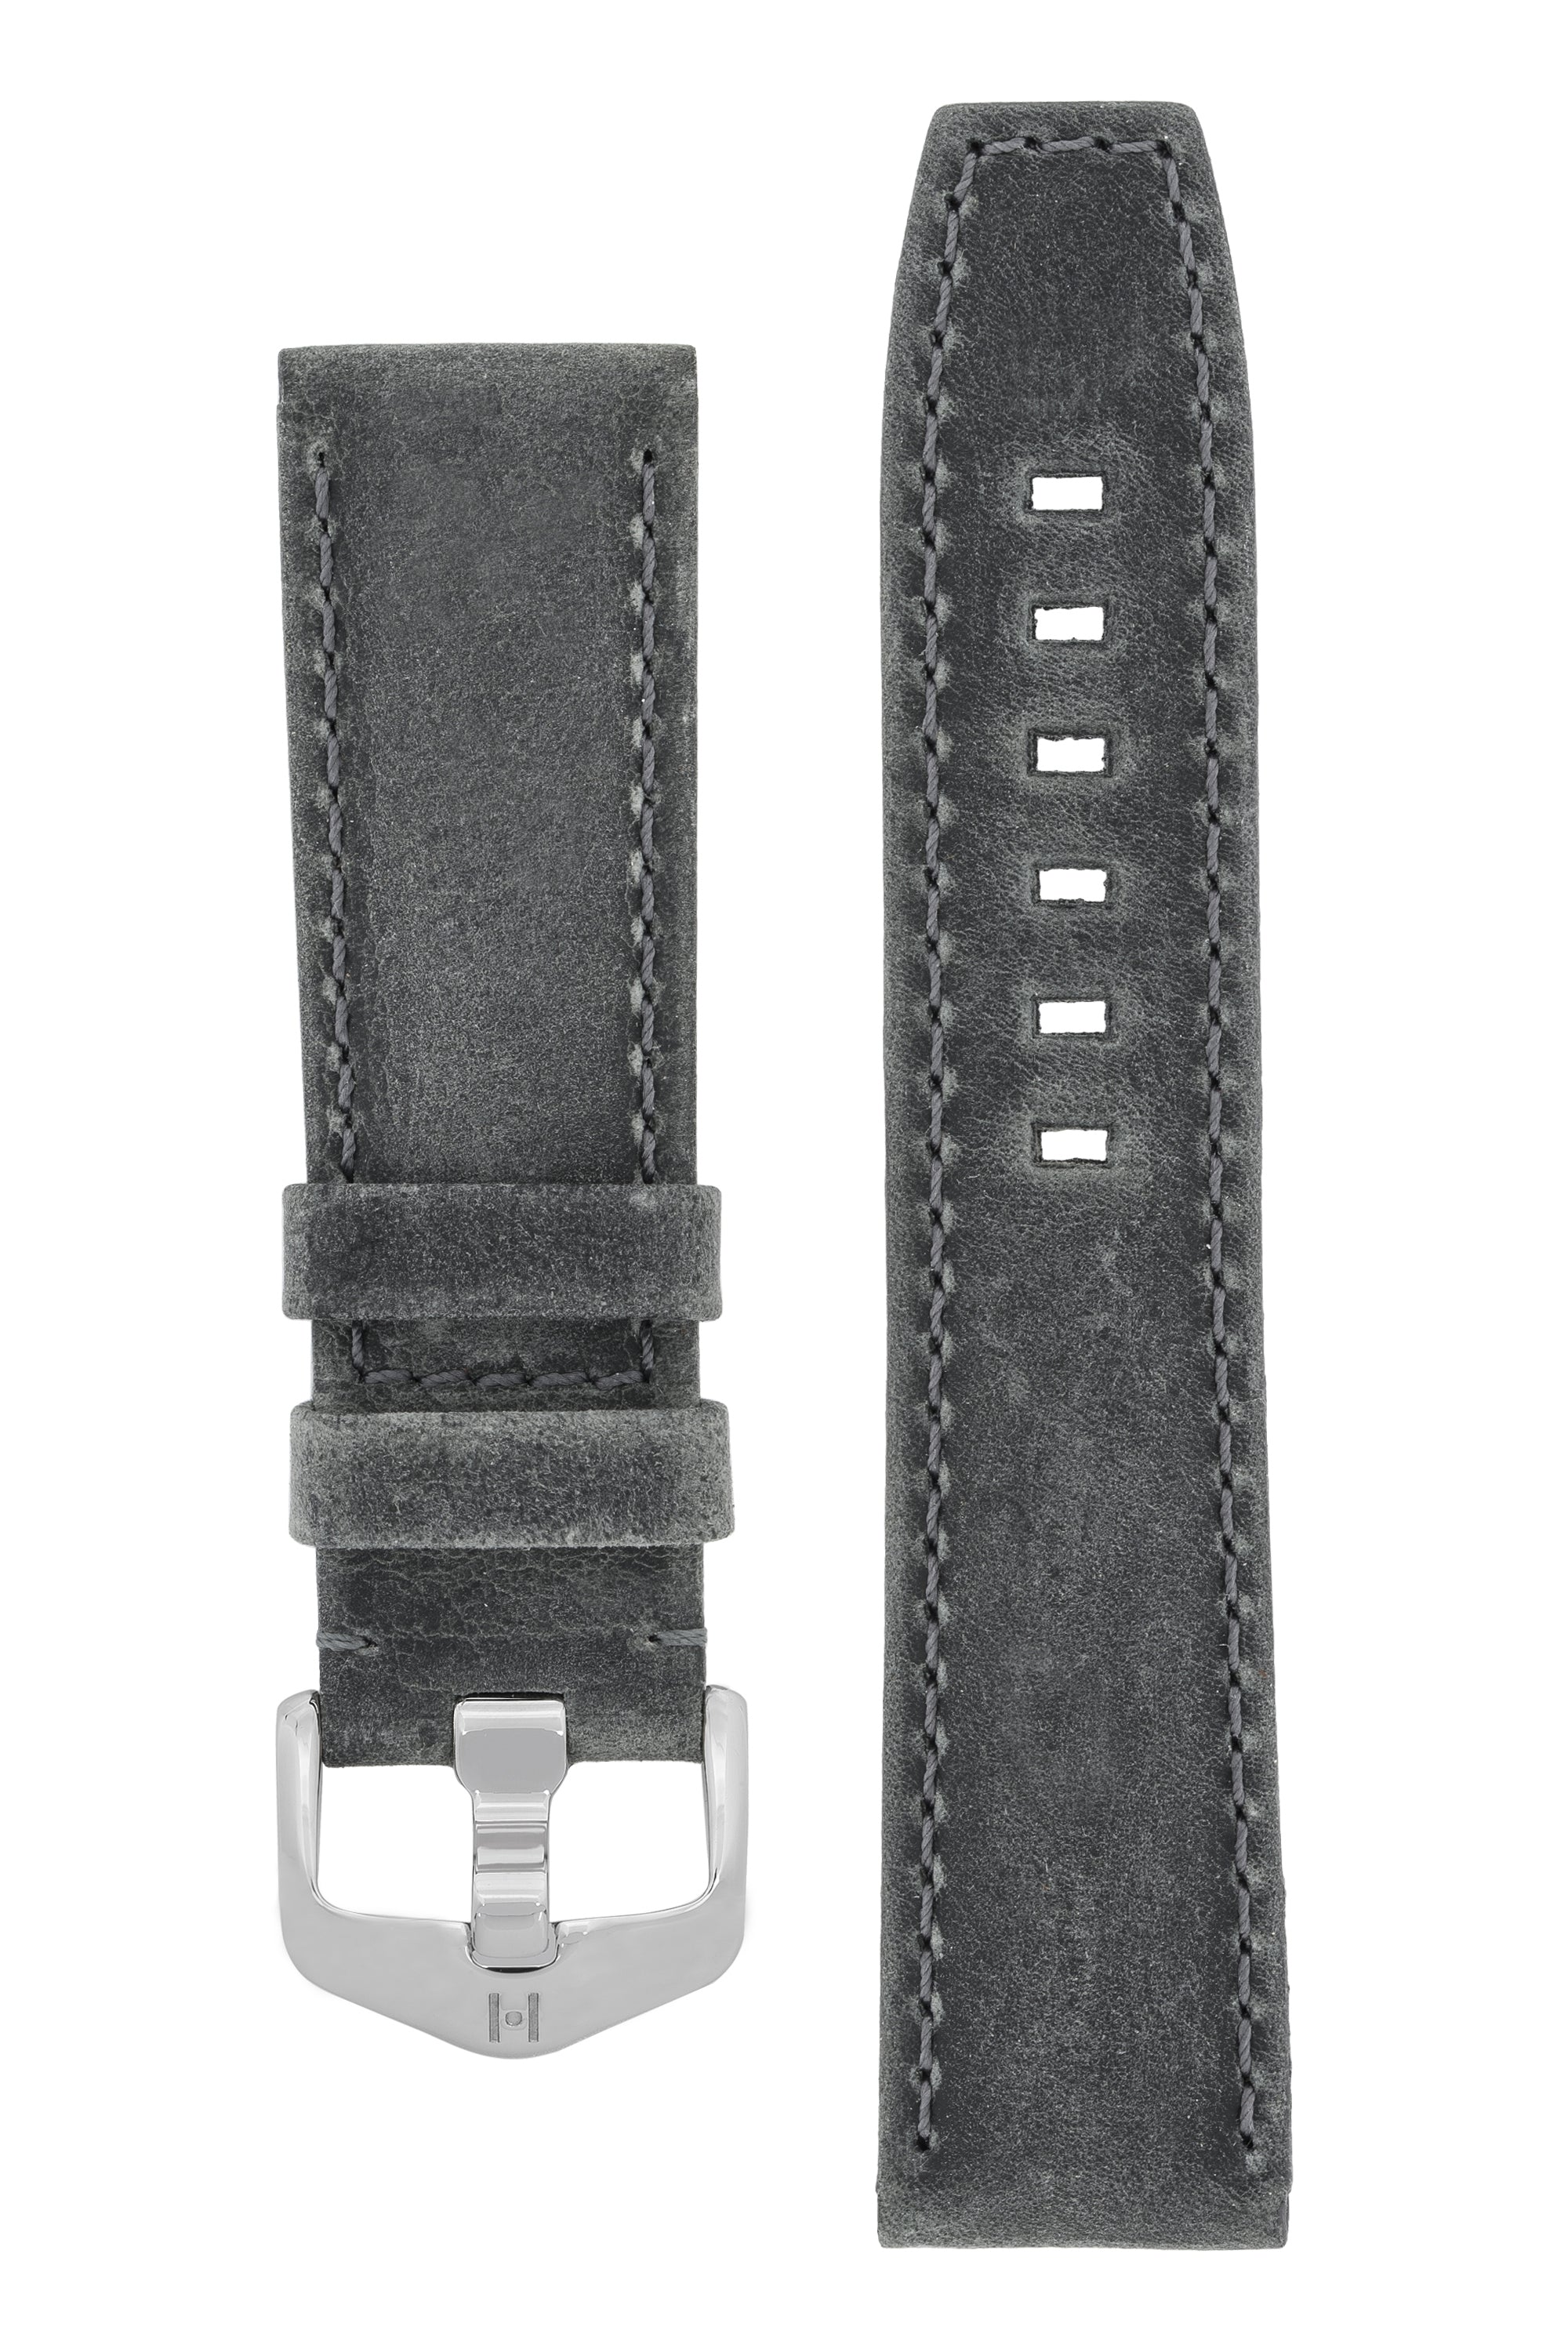 Hirsch TRITONE Kudu Antelope Watch Strap in DARK GREY